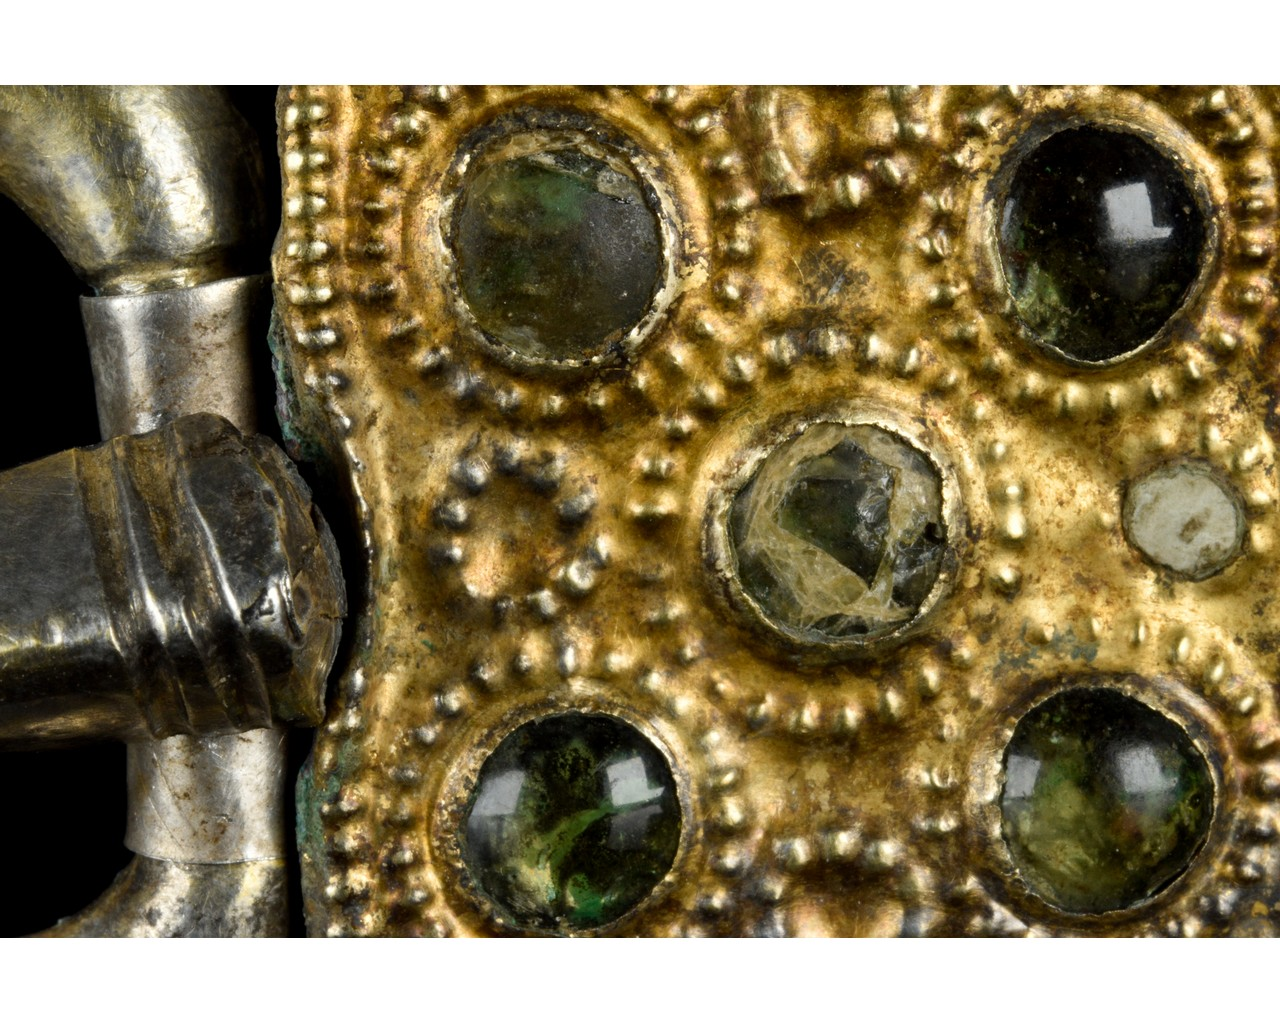 MEDIEVAL MEROVINGIAN SILVER BUCKLE WITH GEMS - Image 4 of 6